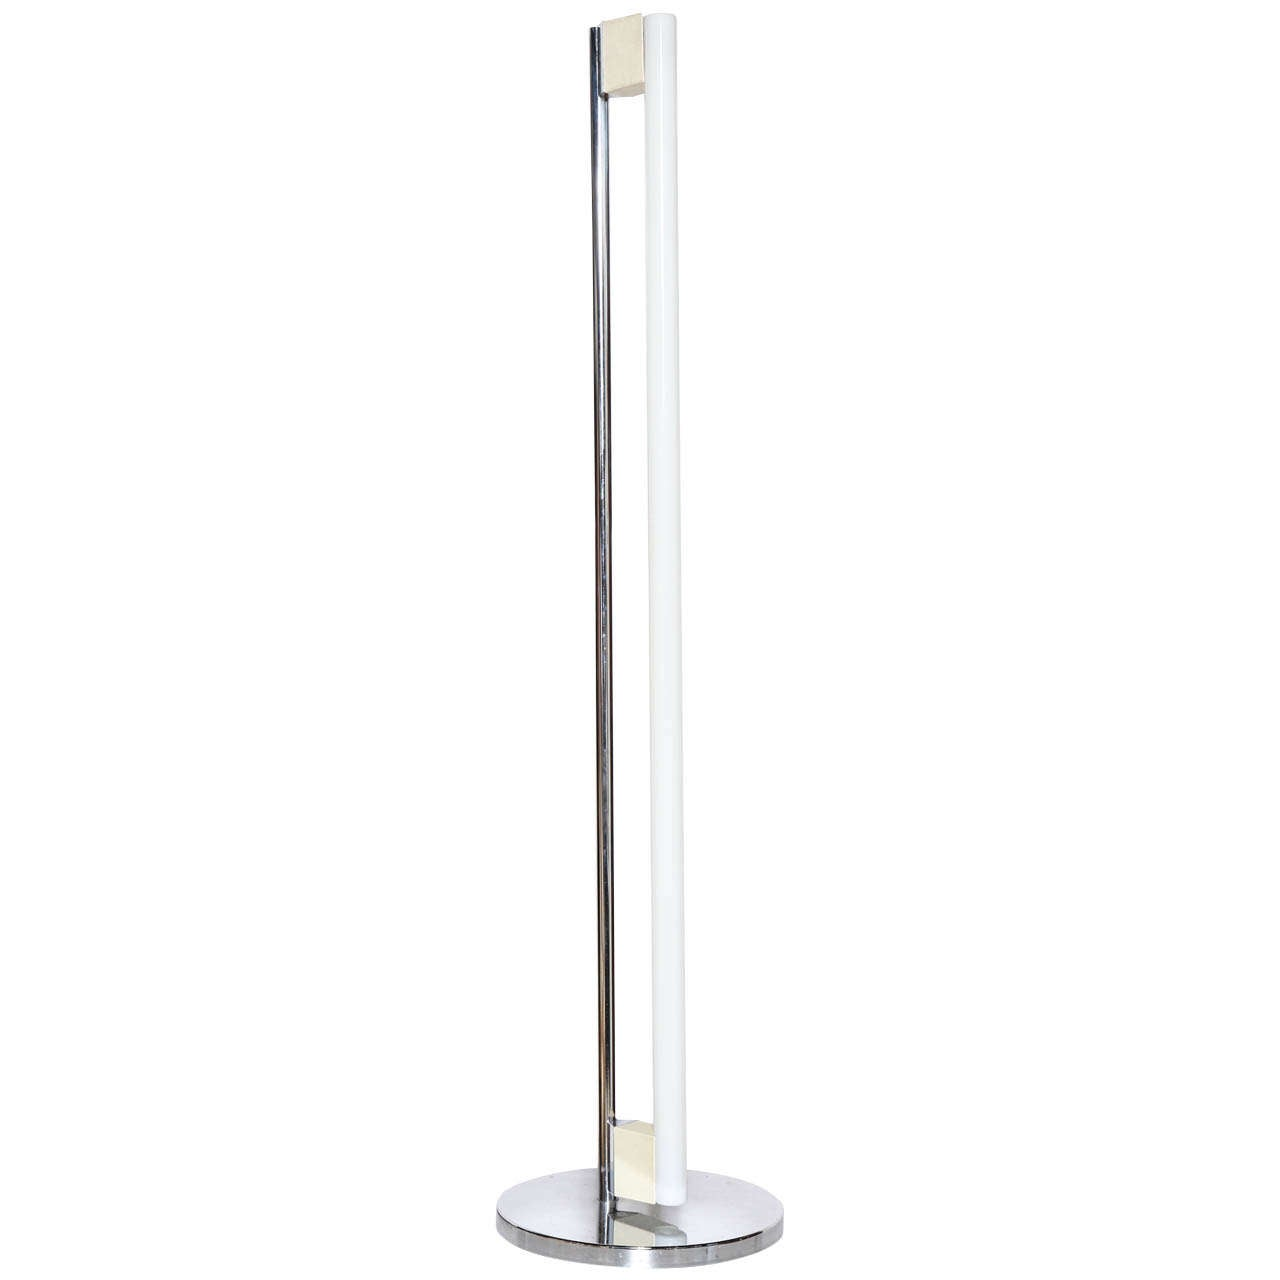 1960s eileen gray designed chrome and fluorescent tube floor lamp 1960s eileen gray designed chrome and fluorescent tube floor lamp for sale aloadofball Image collections